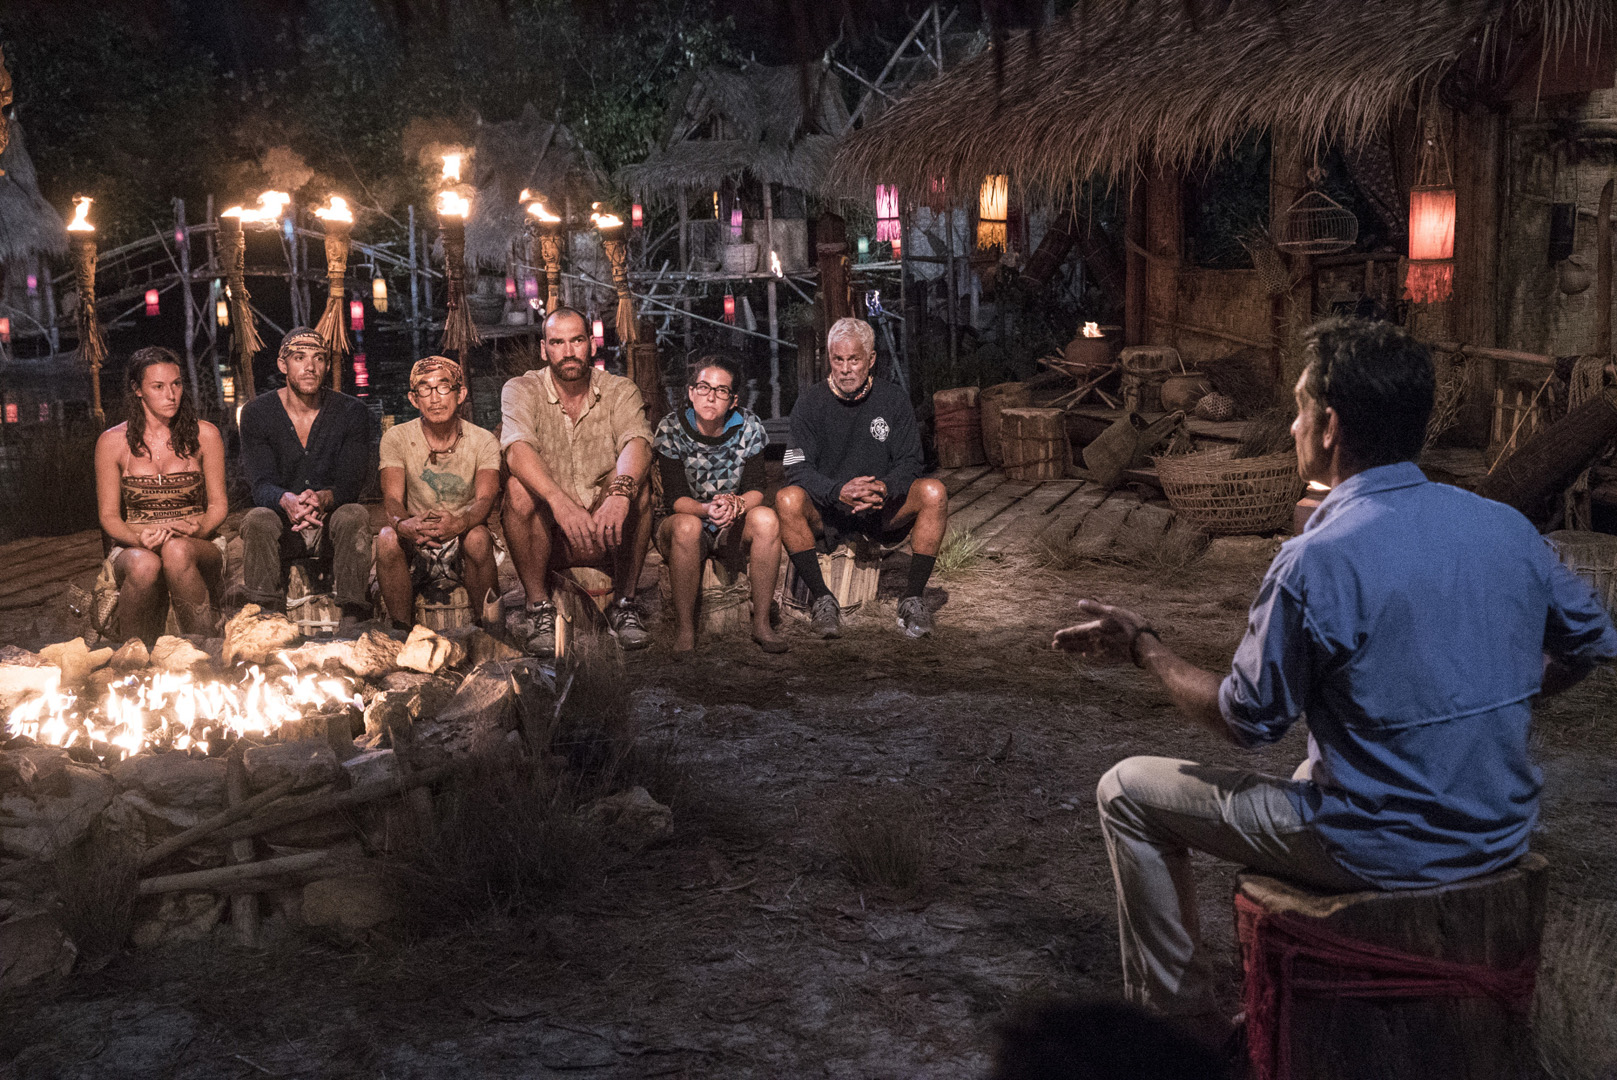 3. Did it cross your mind to tell the rest of the castaways about Tai's Hidden Immunity Idol as you were leaving Tribal?